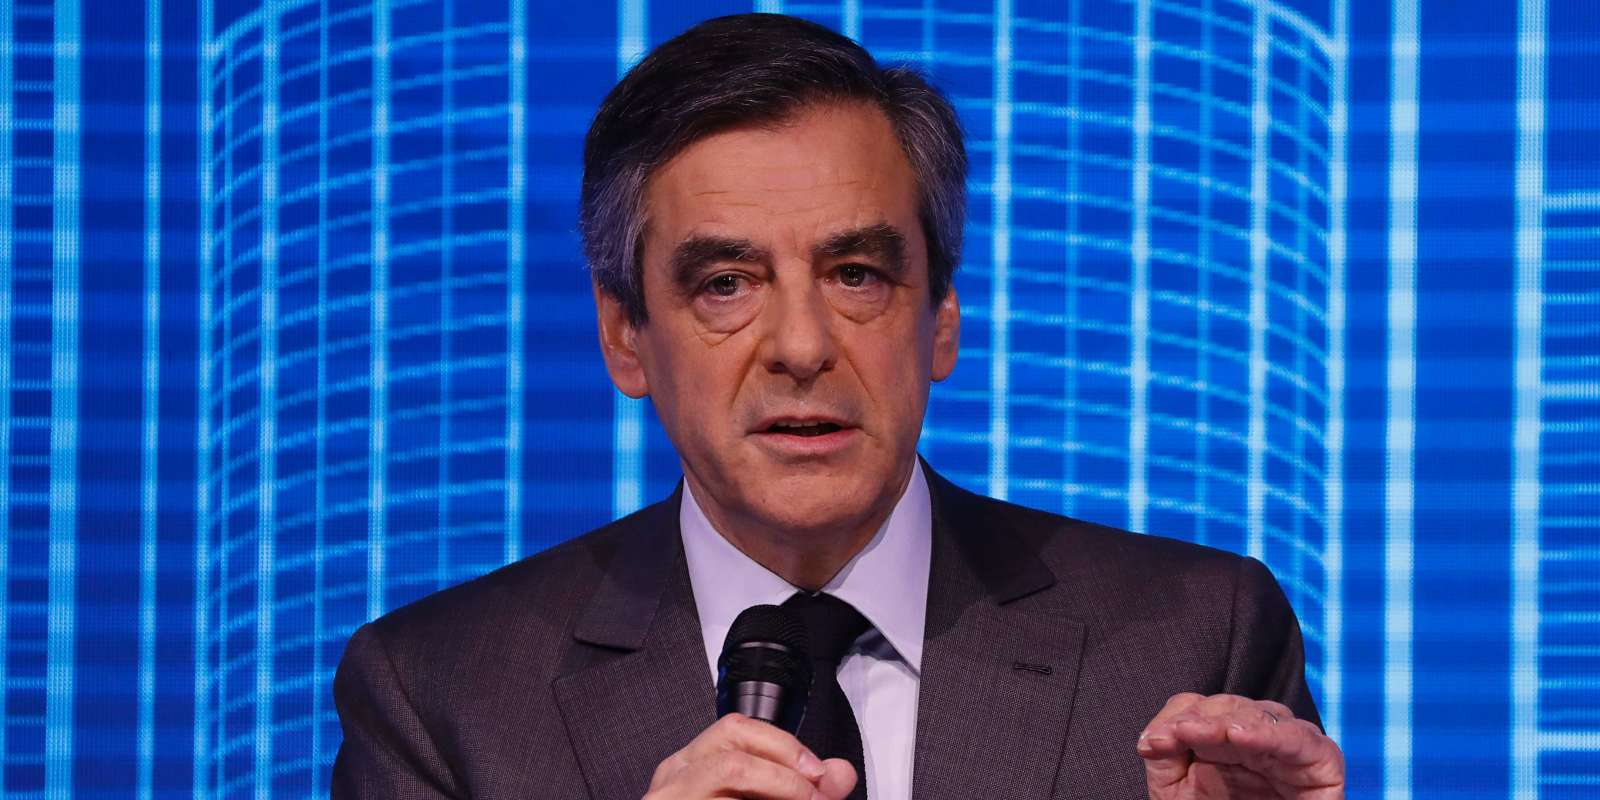 French presidential election candidate for the right-wing Les Republicains (LR) party Francois Fillon speaks during the public works forum